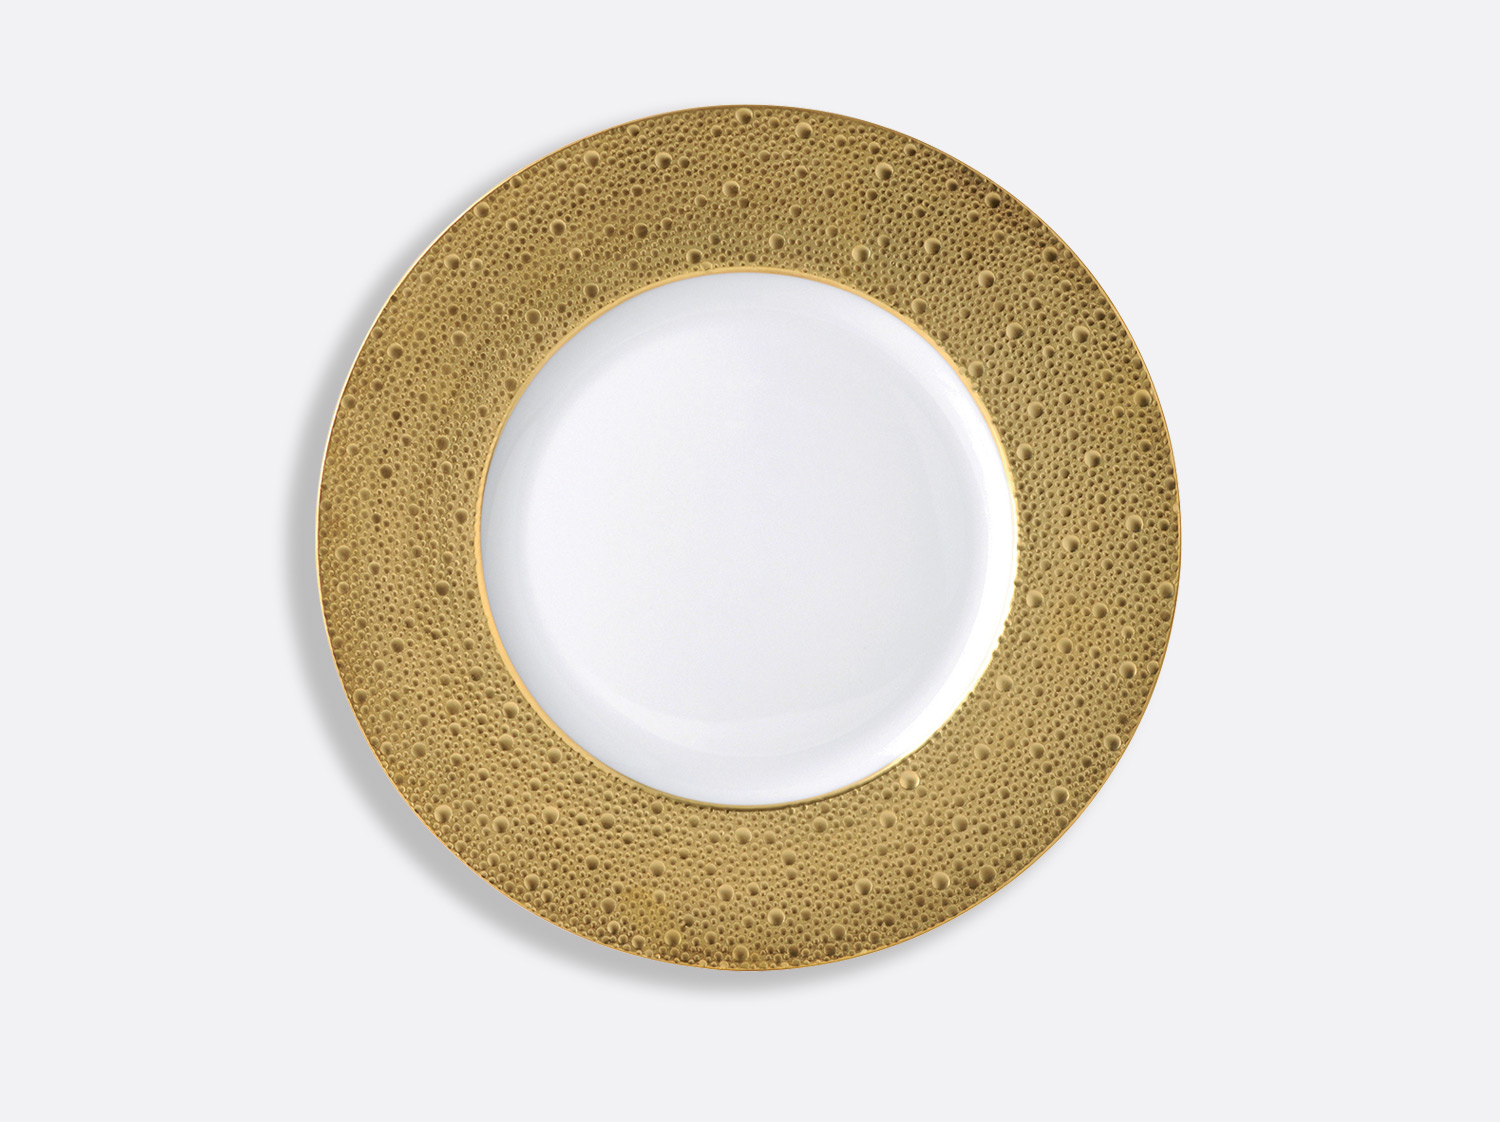 China Plate 31.5 cm of the collection Ecume gold | Bernardaud